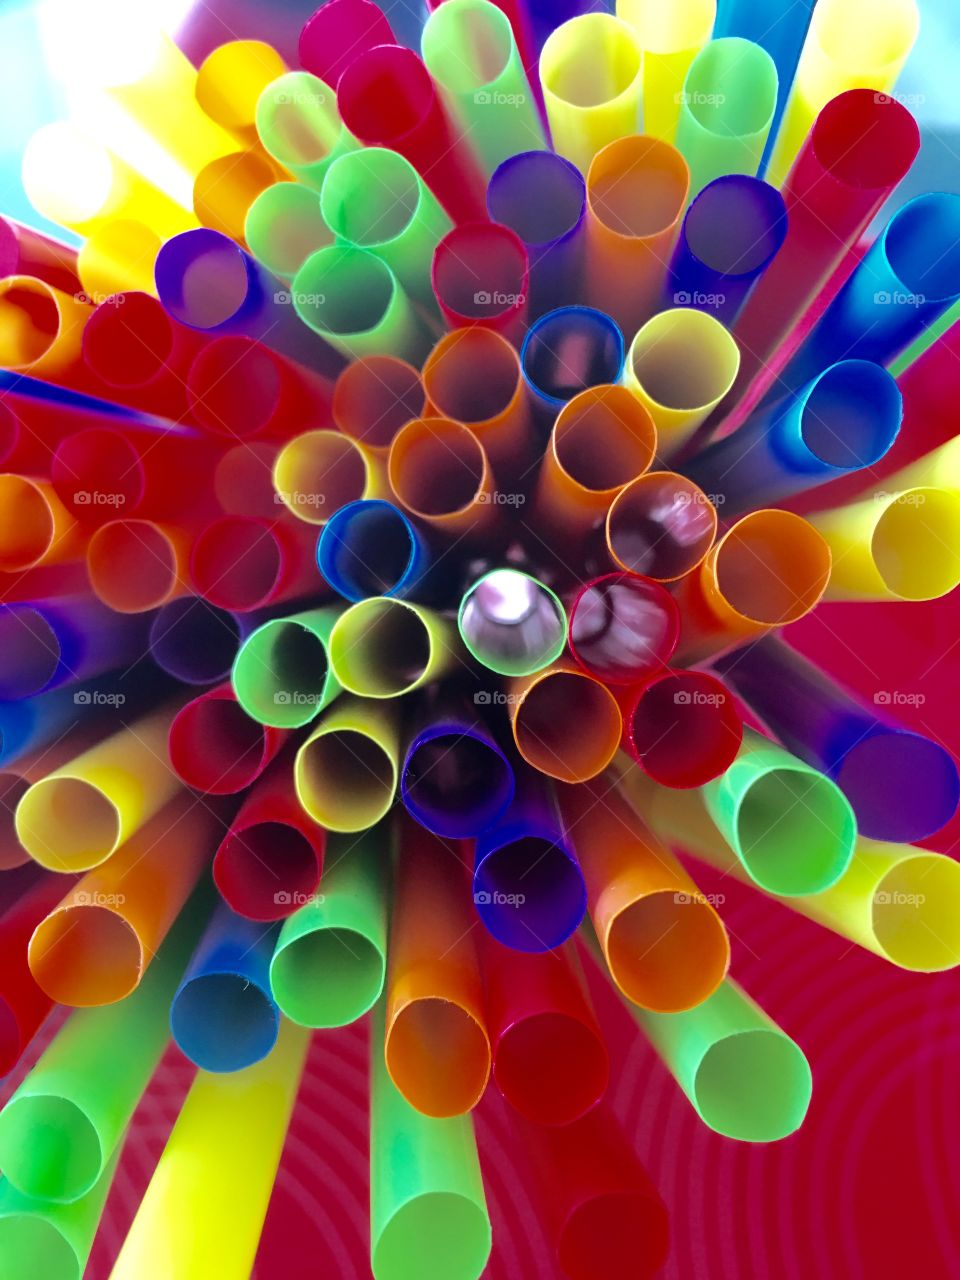 Colorful drinking straws bundle abstract